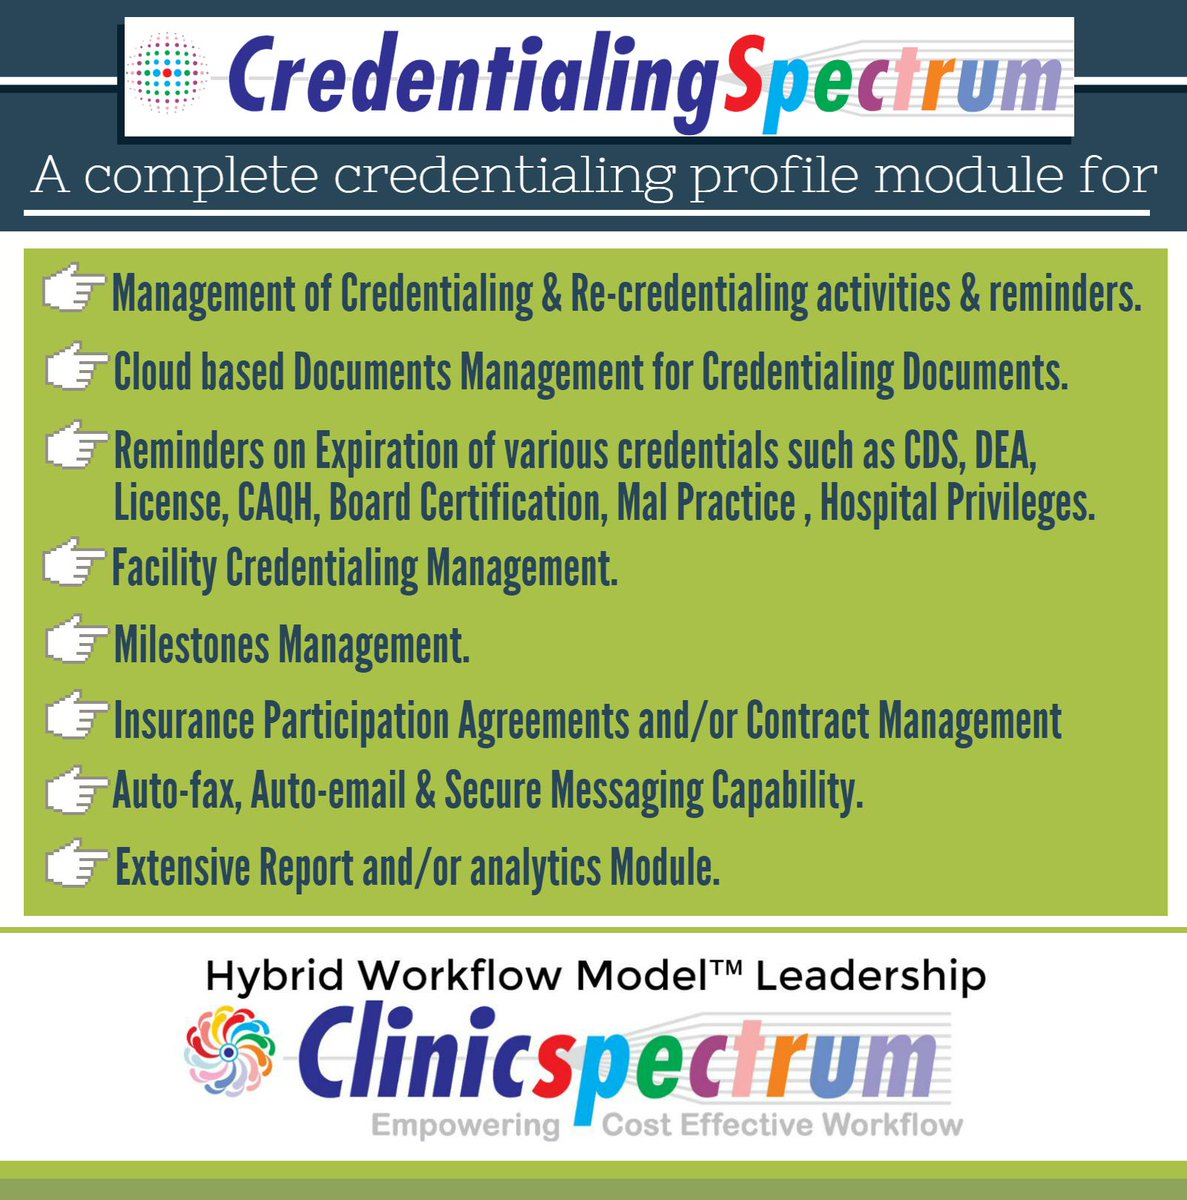 #Credentialing profile module #infographics #healthcare  #HIMSS17 visit booth #472 @ClinicSpectrum #MakeHITCount  http:// bit.ly/2kMOuqg  &nbsp;  <br>http://pic.twitter.com/gF6JB4EHvM